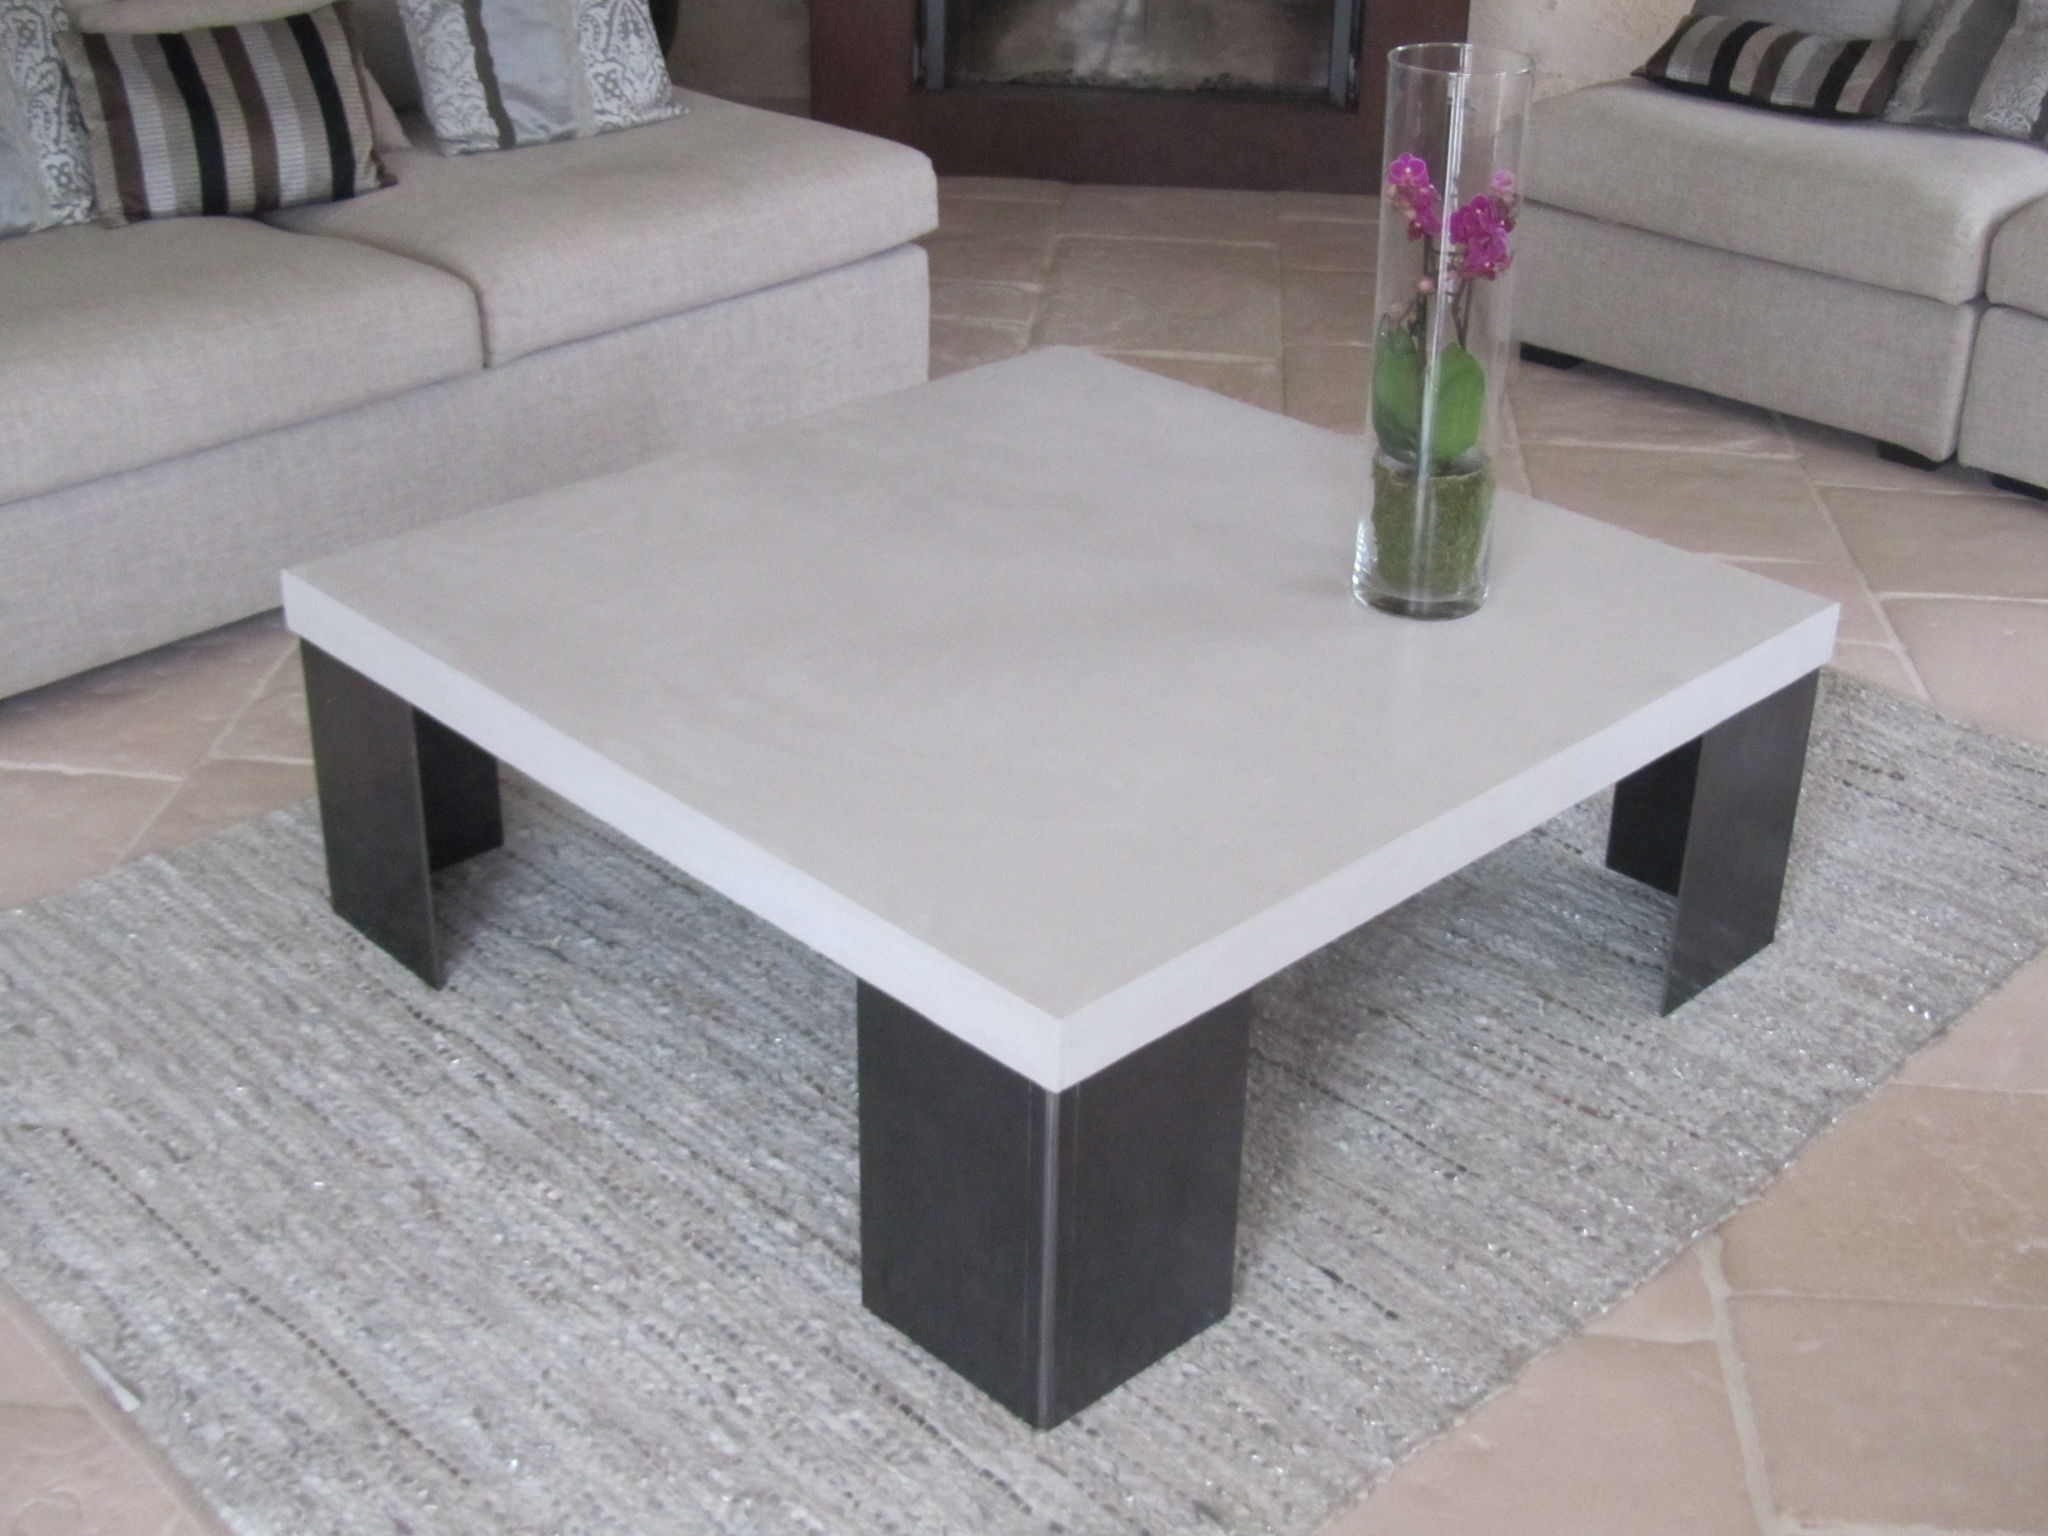 table en beton cire pied en acier photo de beton cire. Black Bedroom Furniture Sets. Home Design Ideas